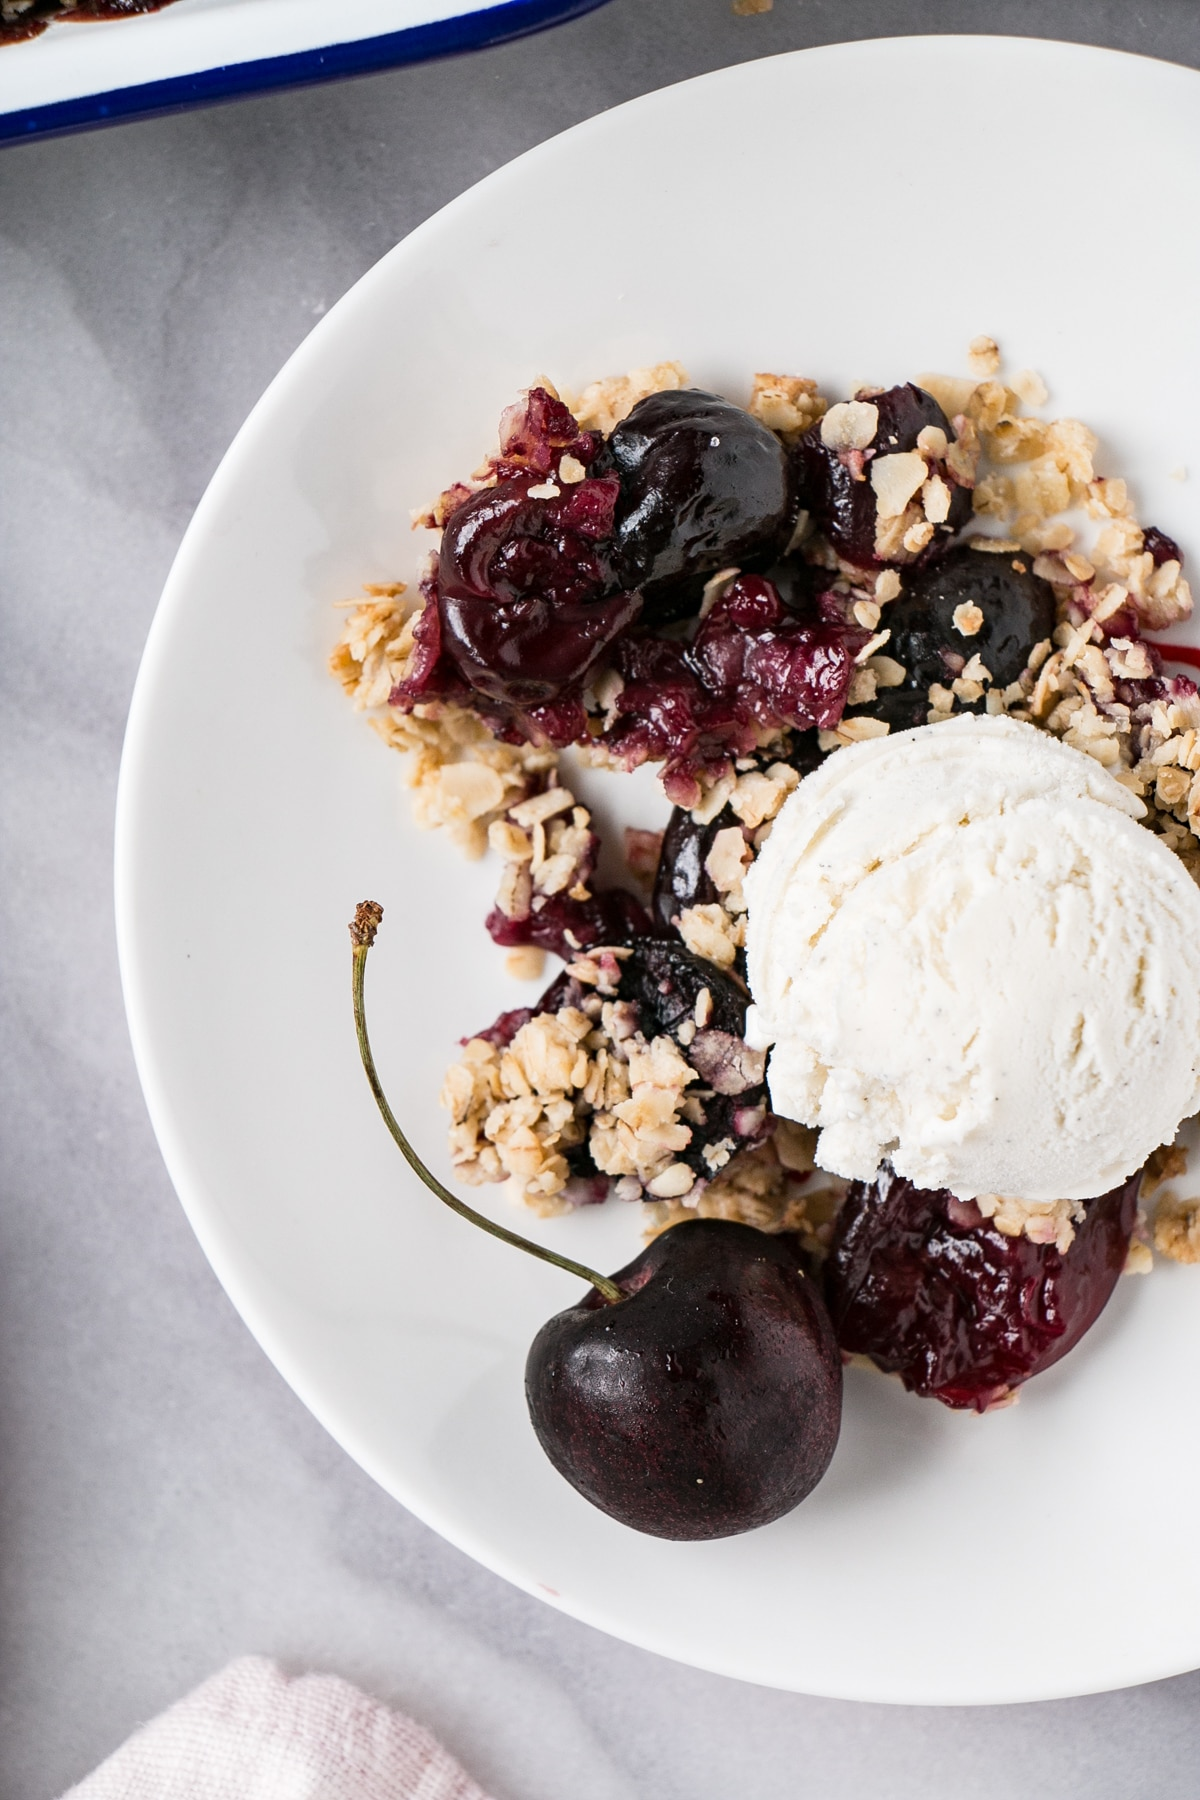 Cherry Crumble on a white plate with a scoop of vanilla ice cream